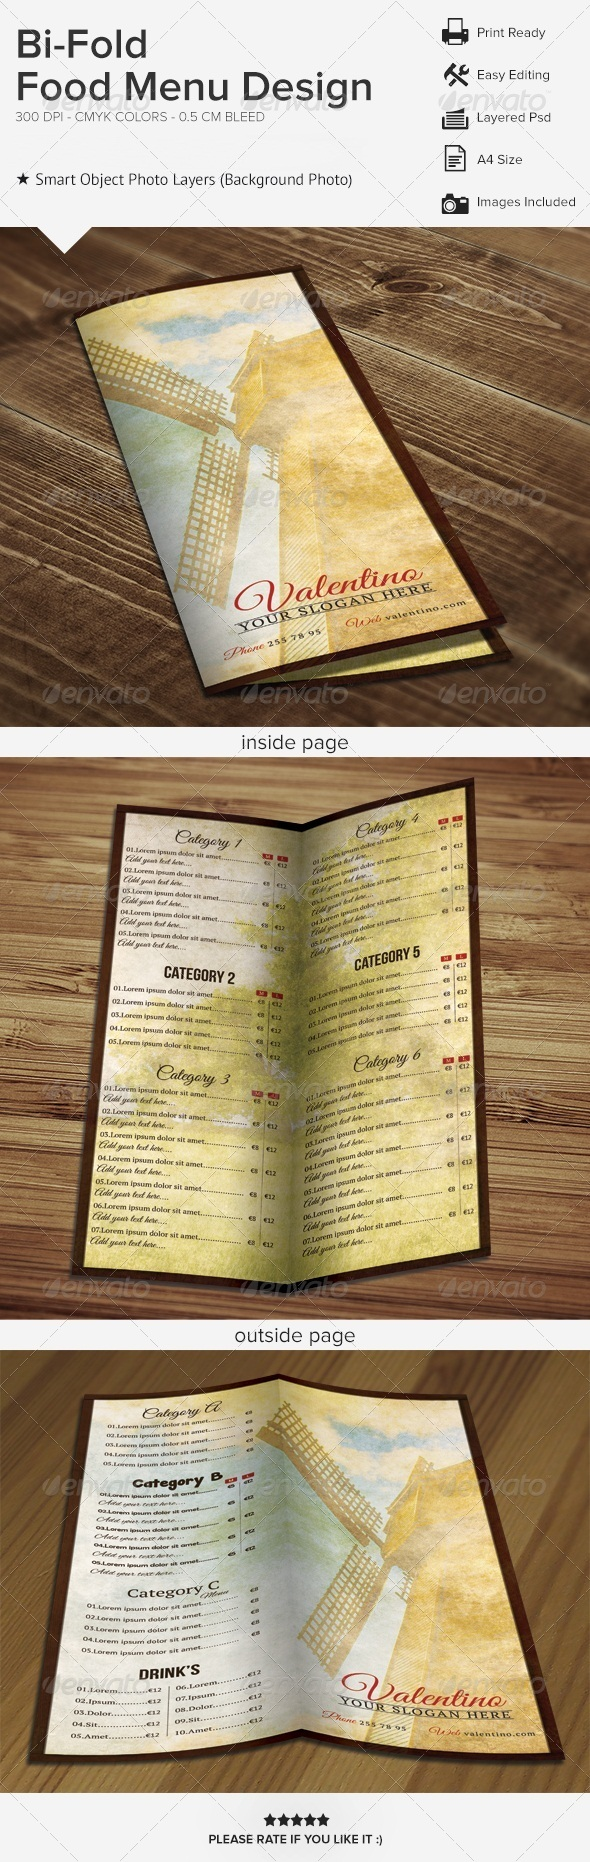 GraphicRiver Bi-Fold Food Menu Design 6237829